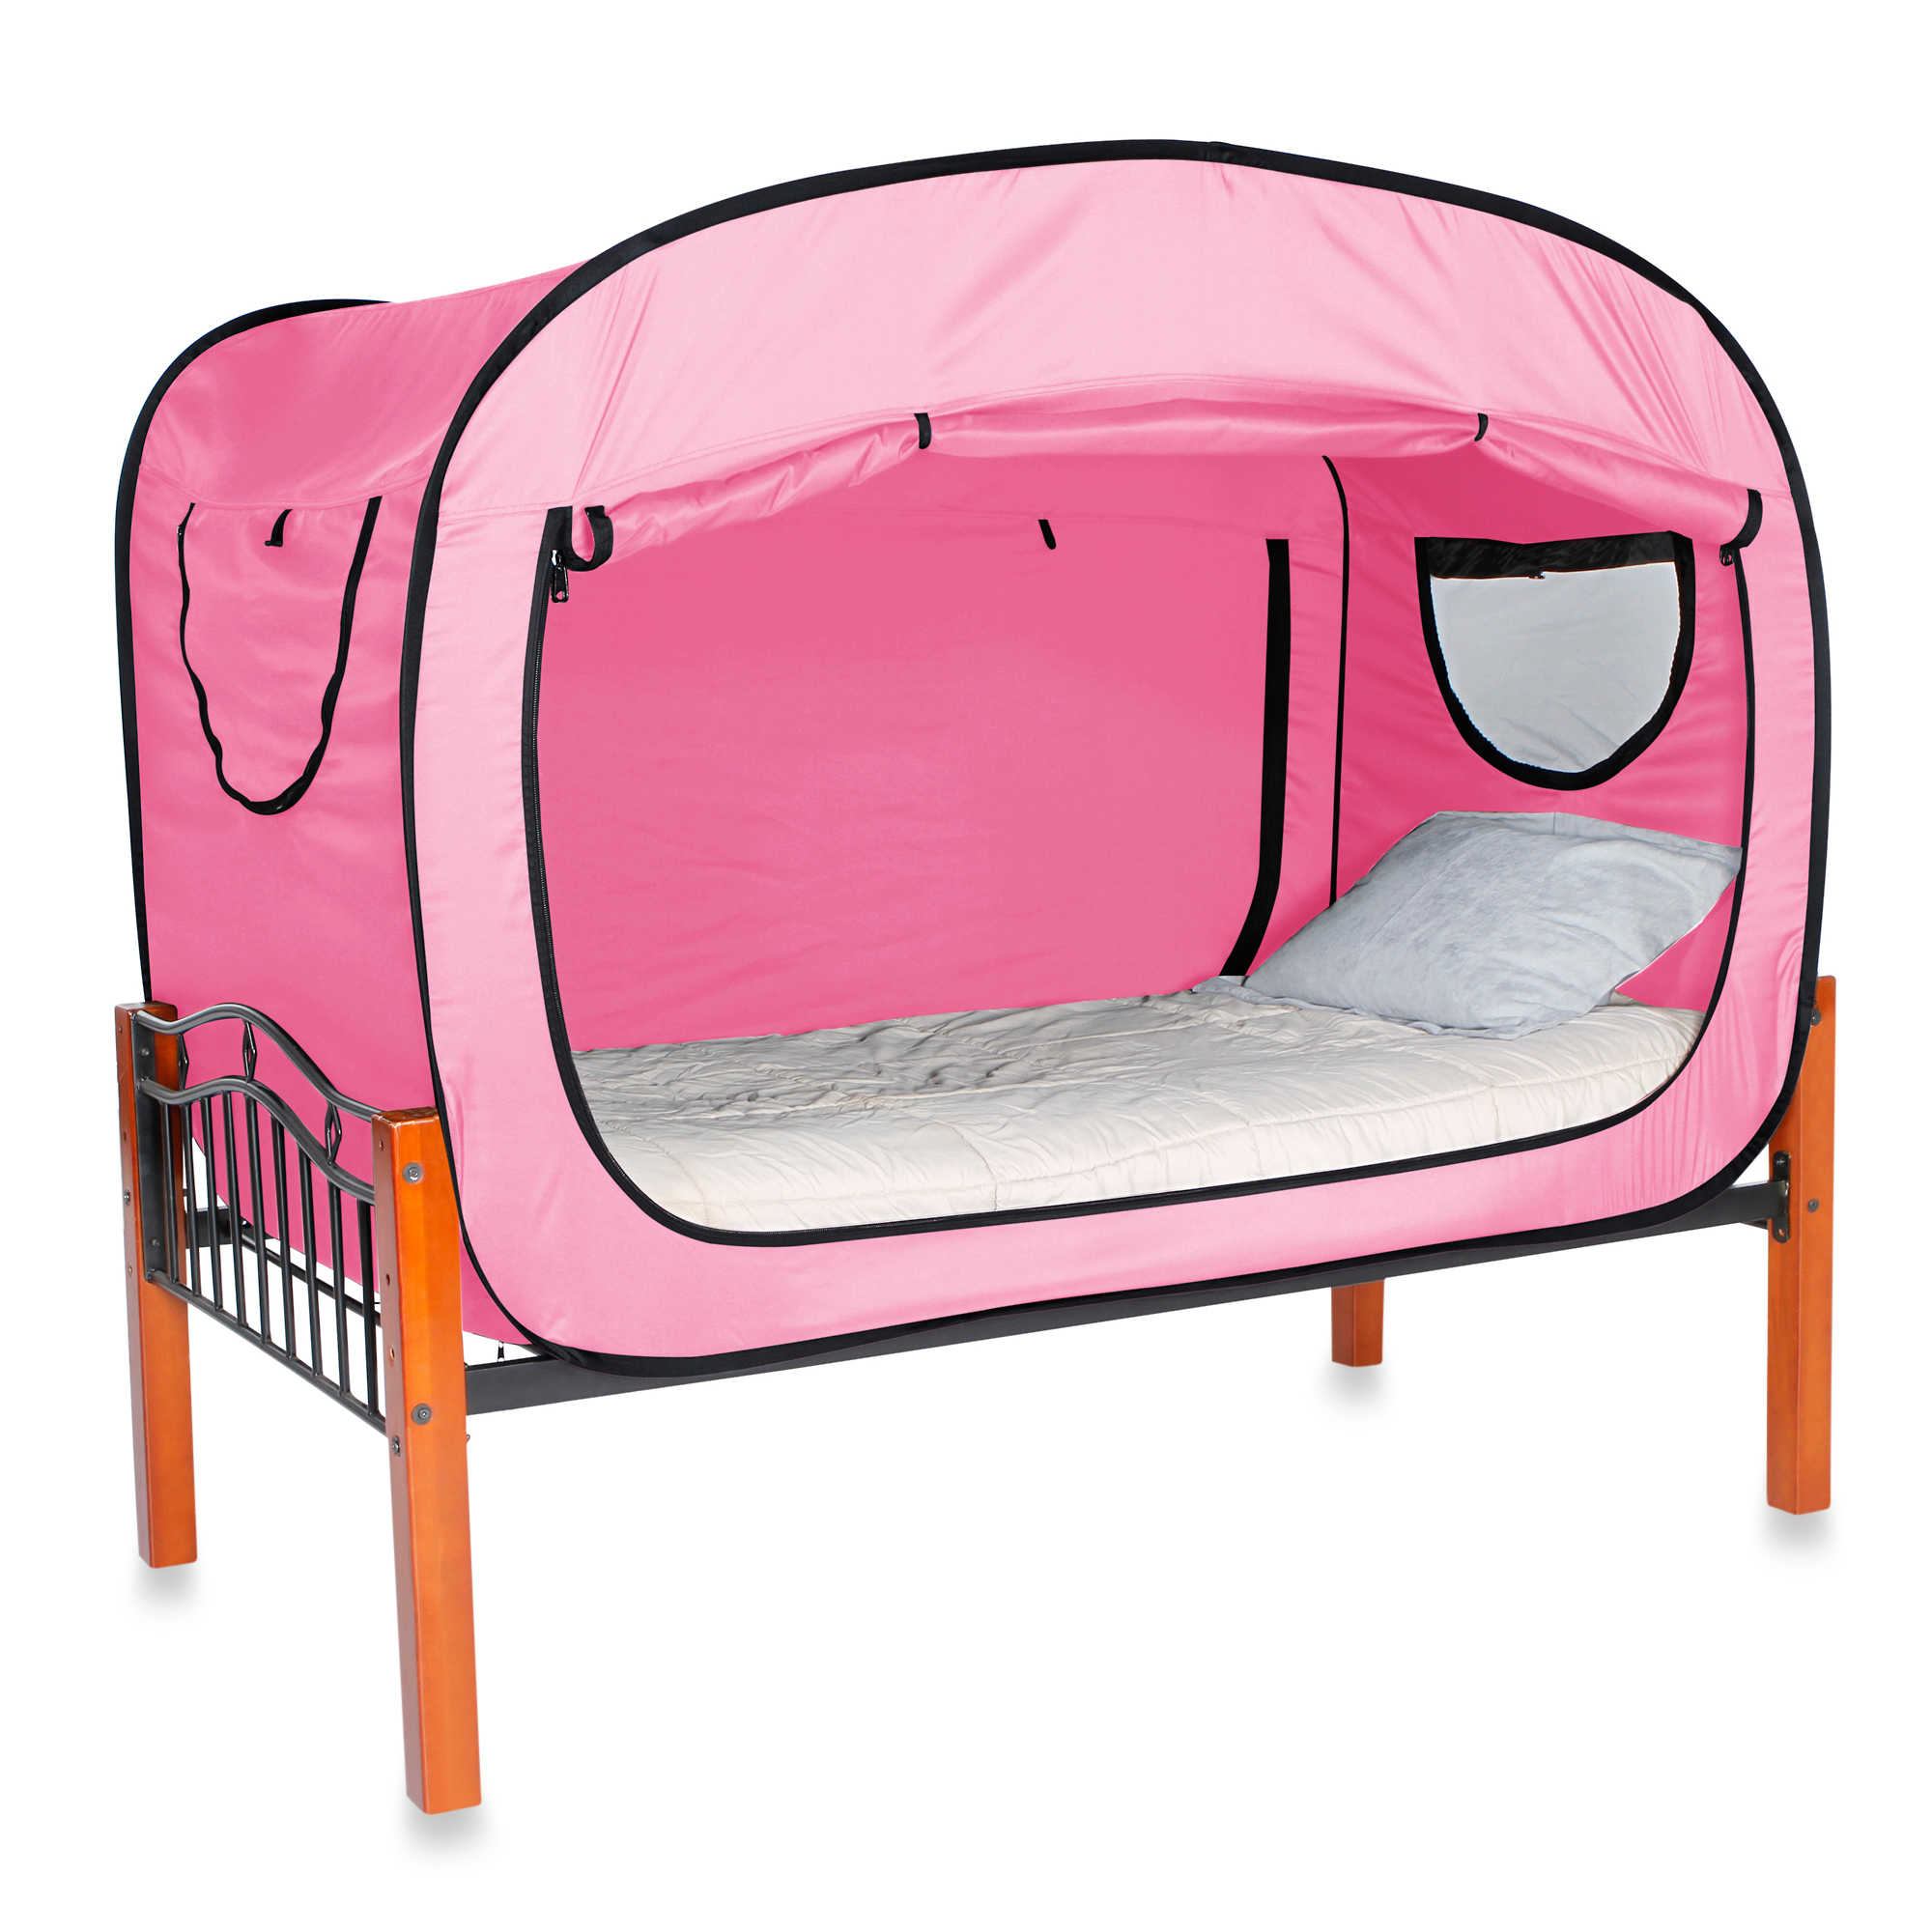 Bedding Pacific Play Tents Kids Secret Castle Bed Tent Twin Size  sc 1 st  Butcher Cover & Kids Bed Tent Twin Size - buythebutchercover.com